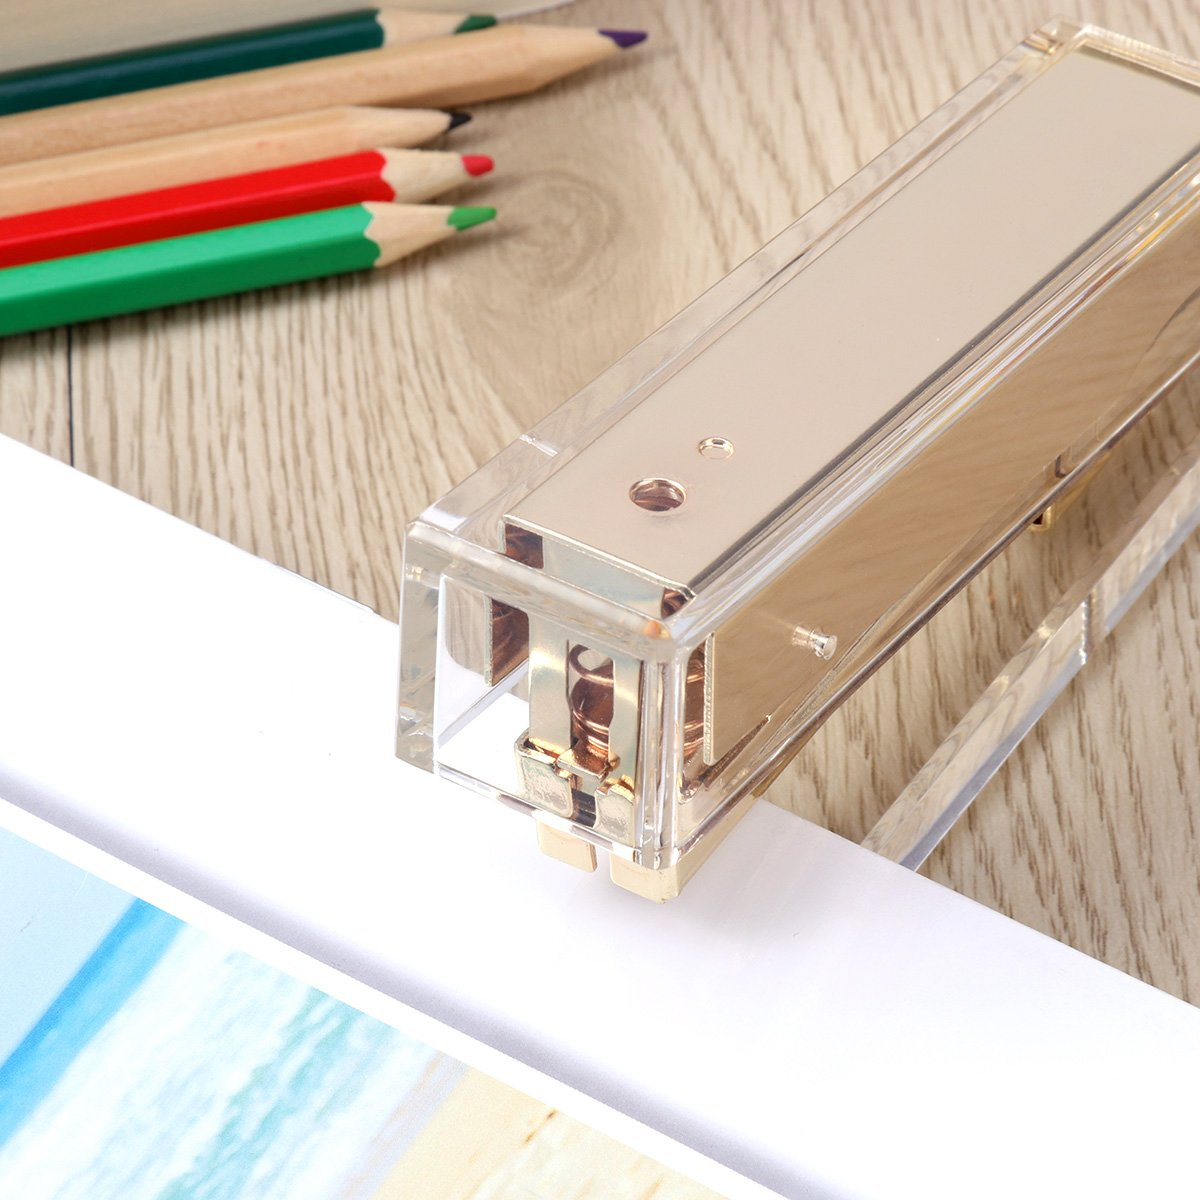 TOYMYTOY Acrylic Clear Desktop Staplers,Classic Desk Staplers for Office, School Use (Gold) by TOYMYTOY (Image #4)